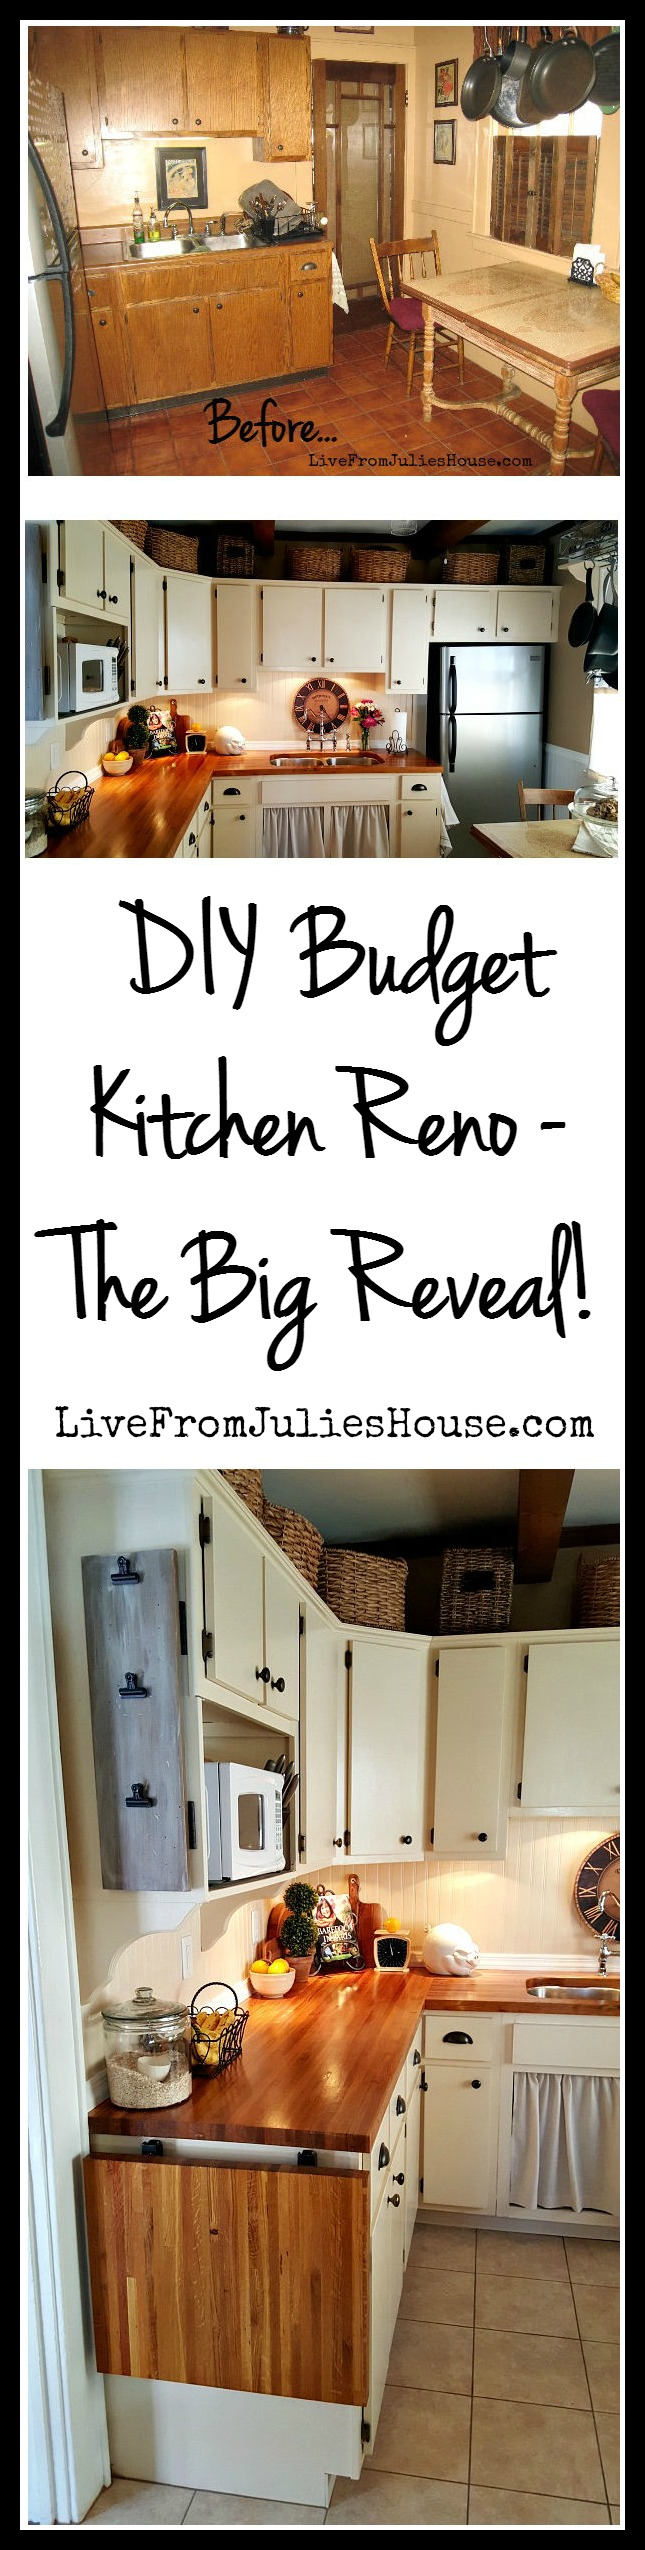 DIY Cottage Kichen Reno on a Budget - This 10'x10' room is jam packed with clever, budget friendly ideas for making the most of a small space.